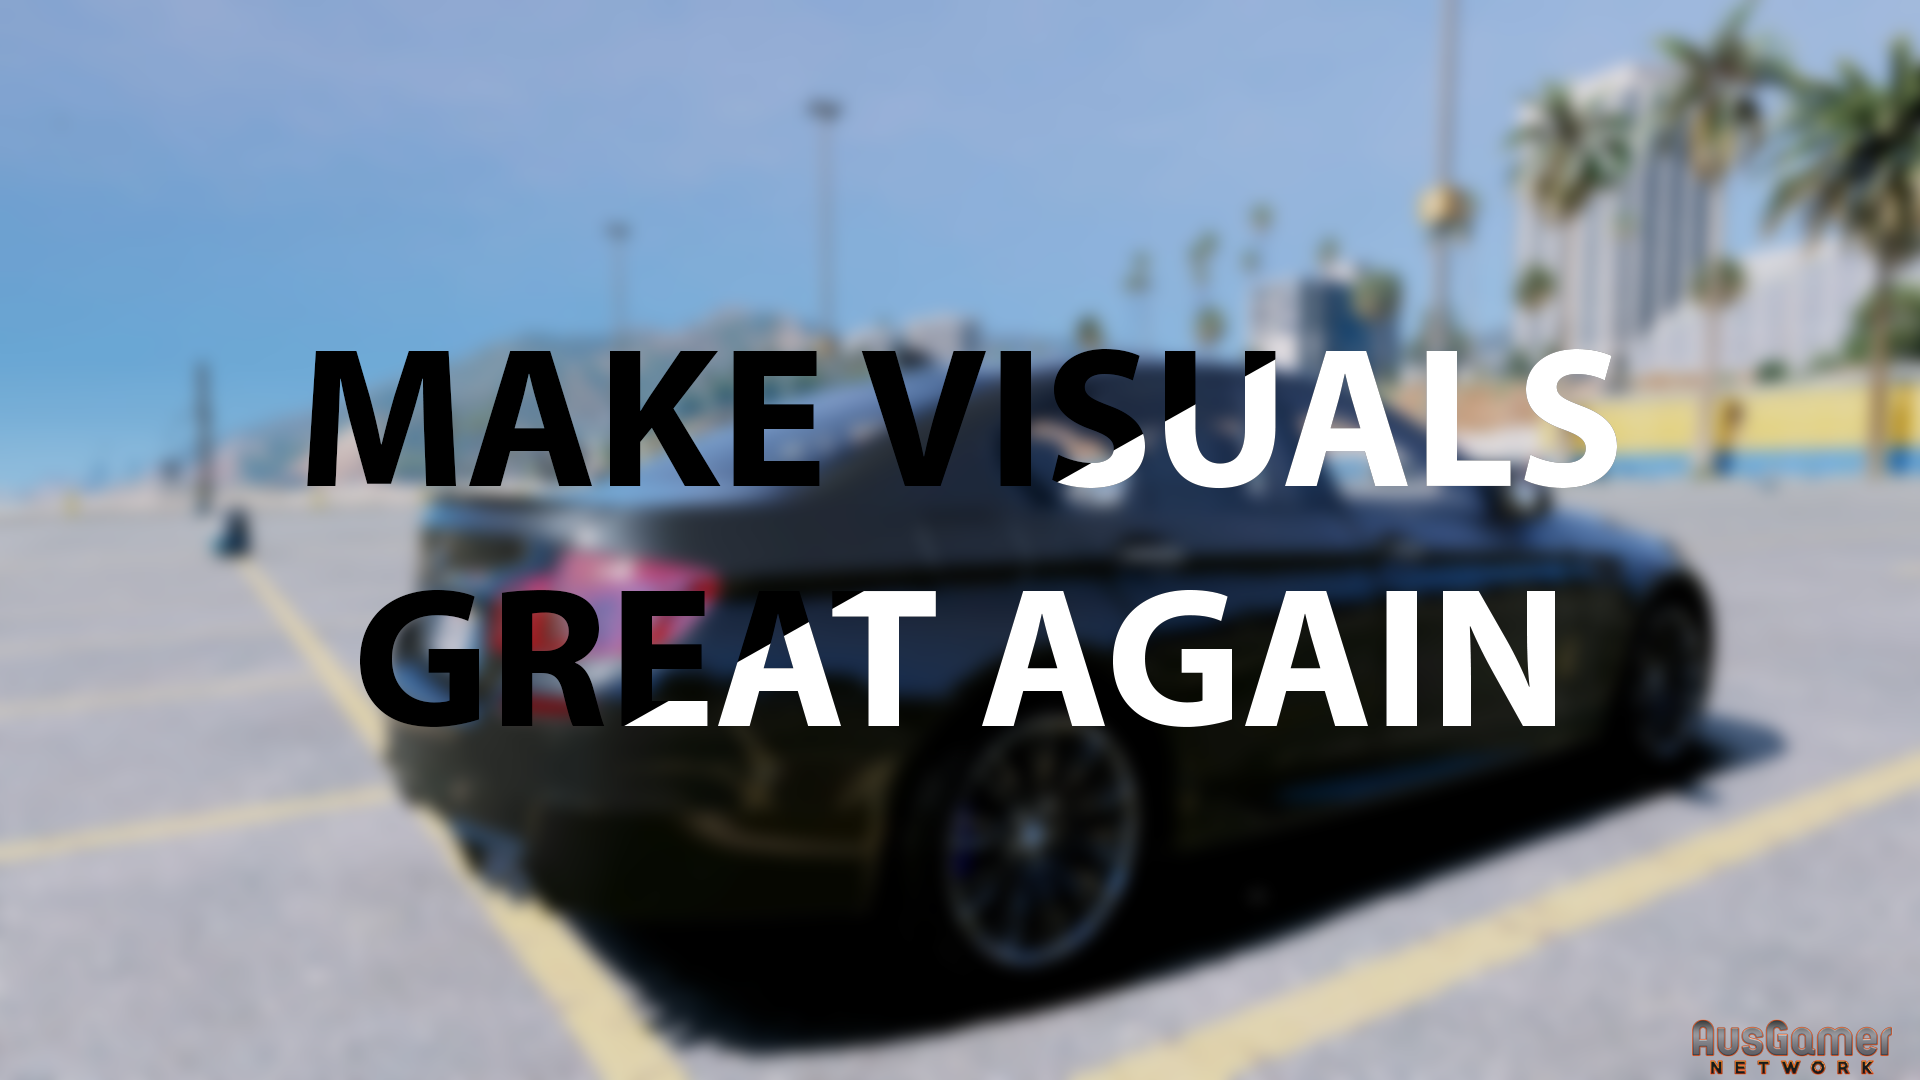 Make Visuals Great Again - Visual Mods - AusGamer Network